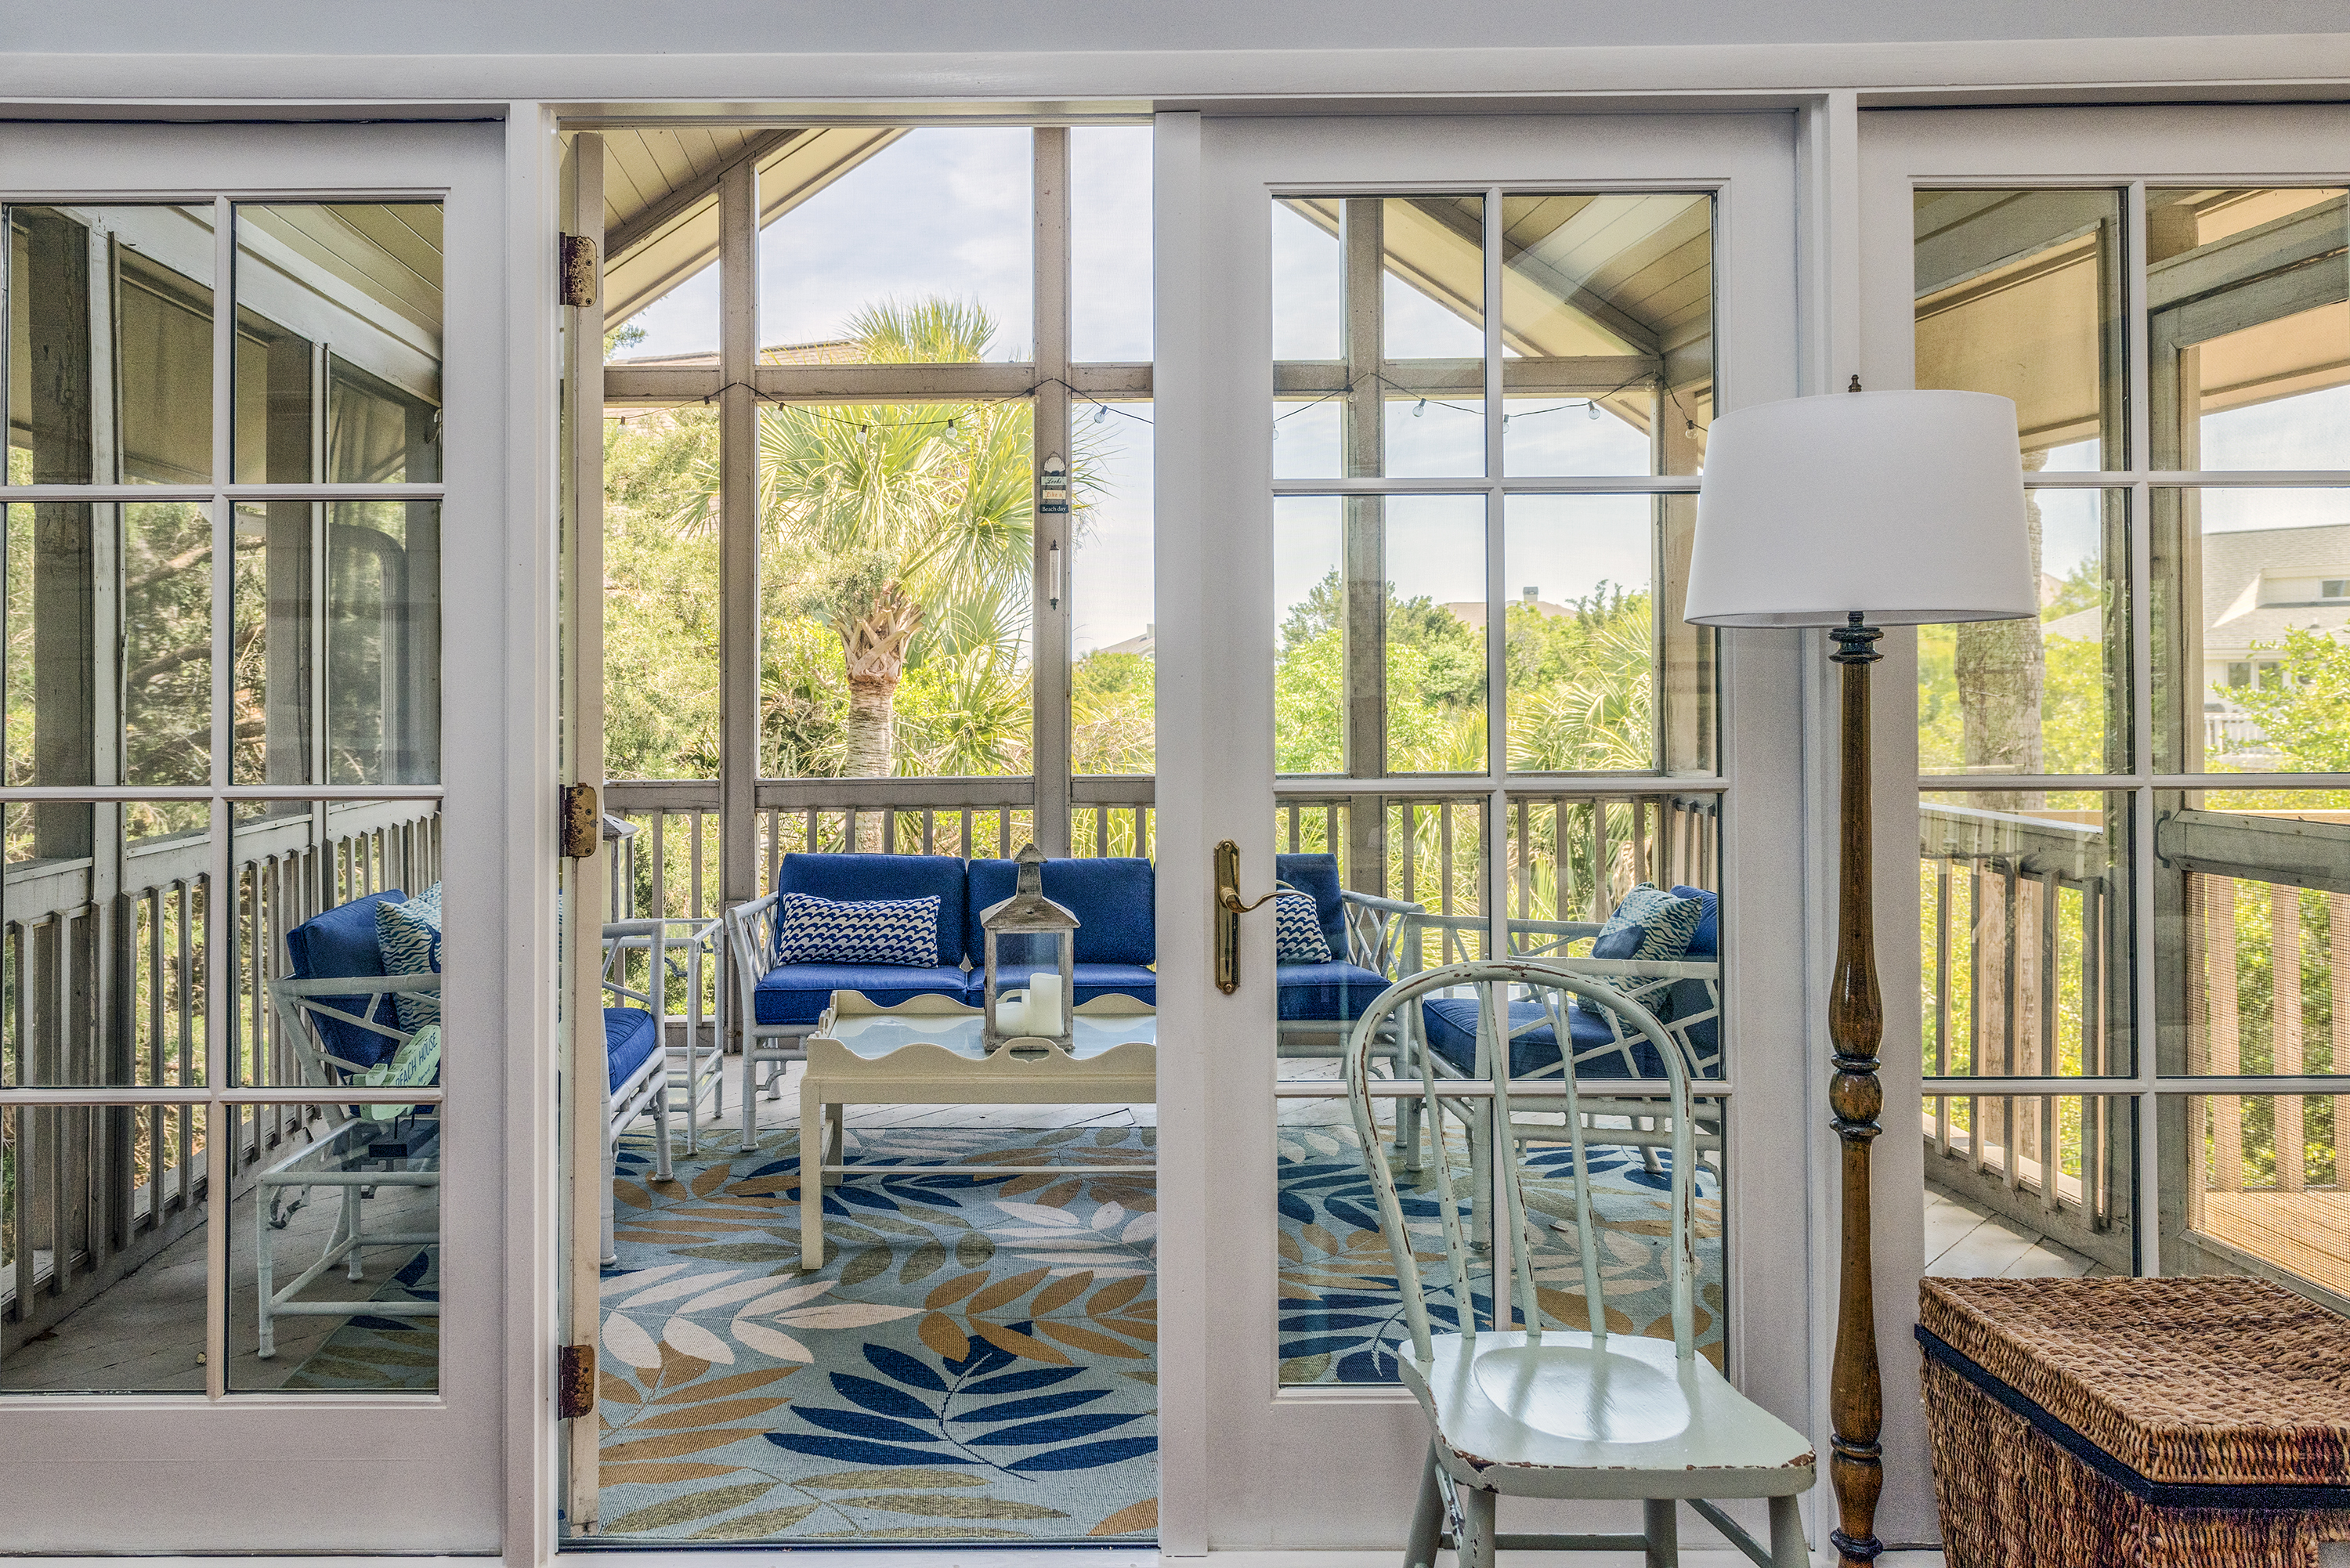 Off the living area is a fabulous screened porch, capturing distant ocean views and wonderful breezes.